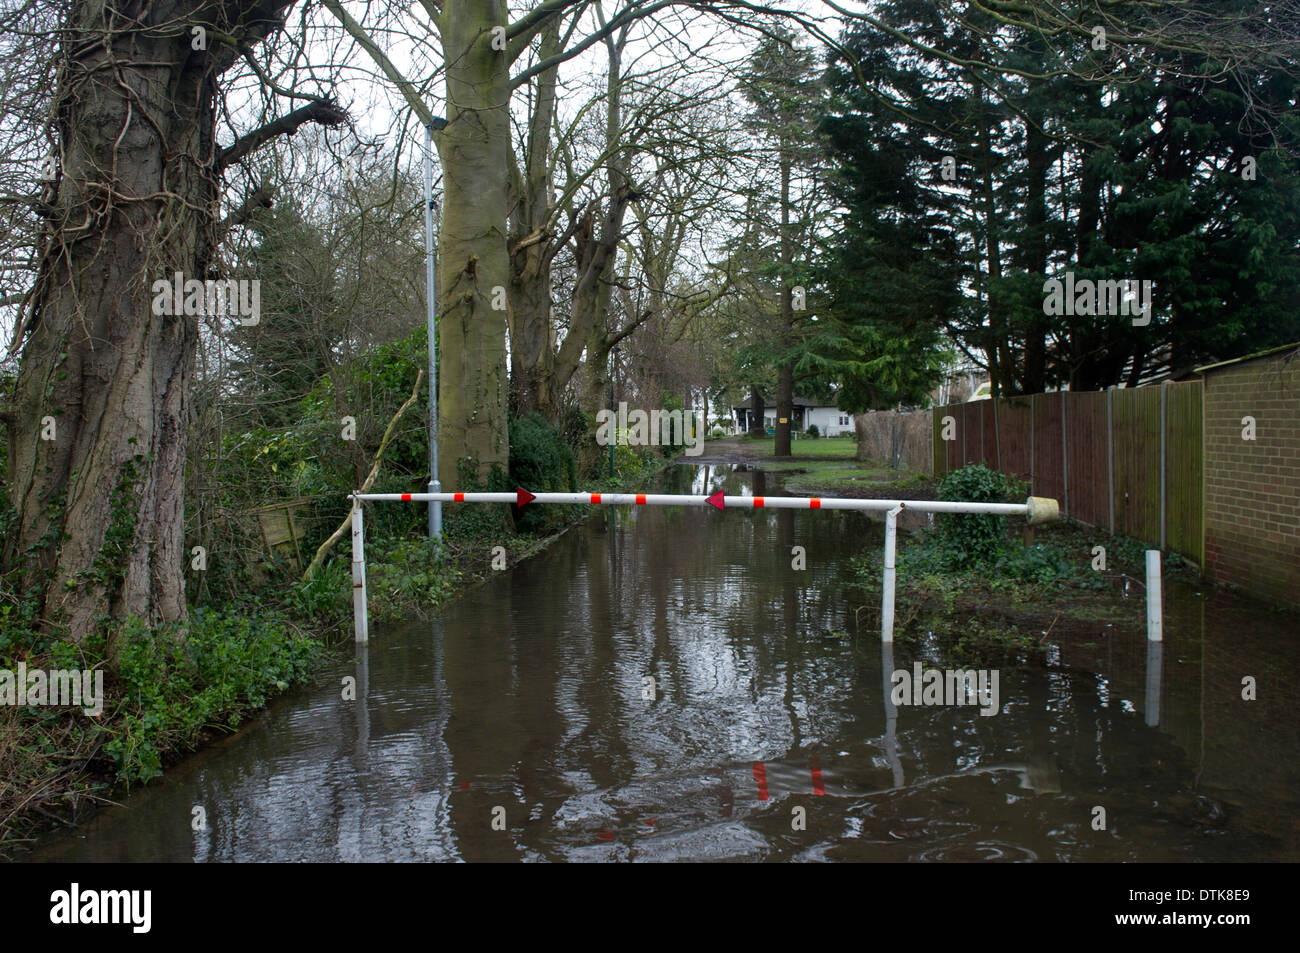 Flooded residential area and park in Staines. Driveway totally flooded with closed barrier to restrict access. - Stock Image